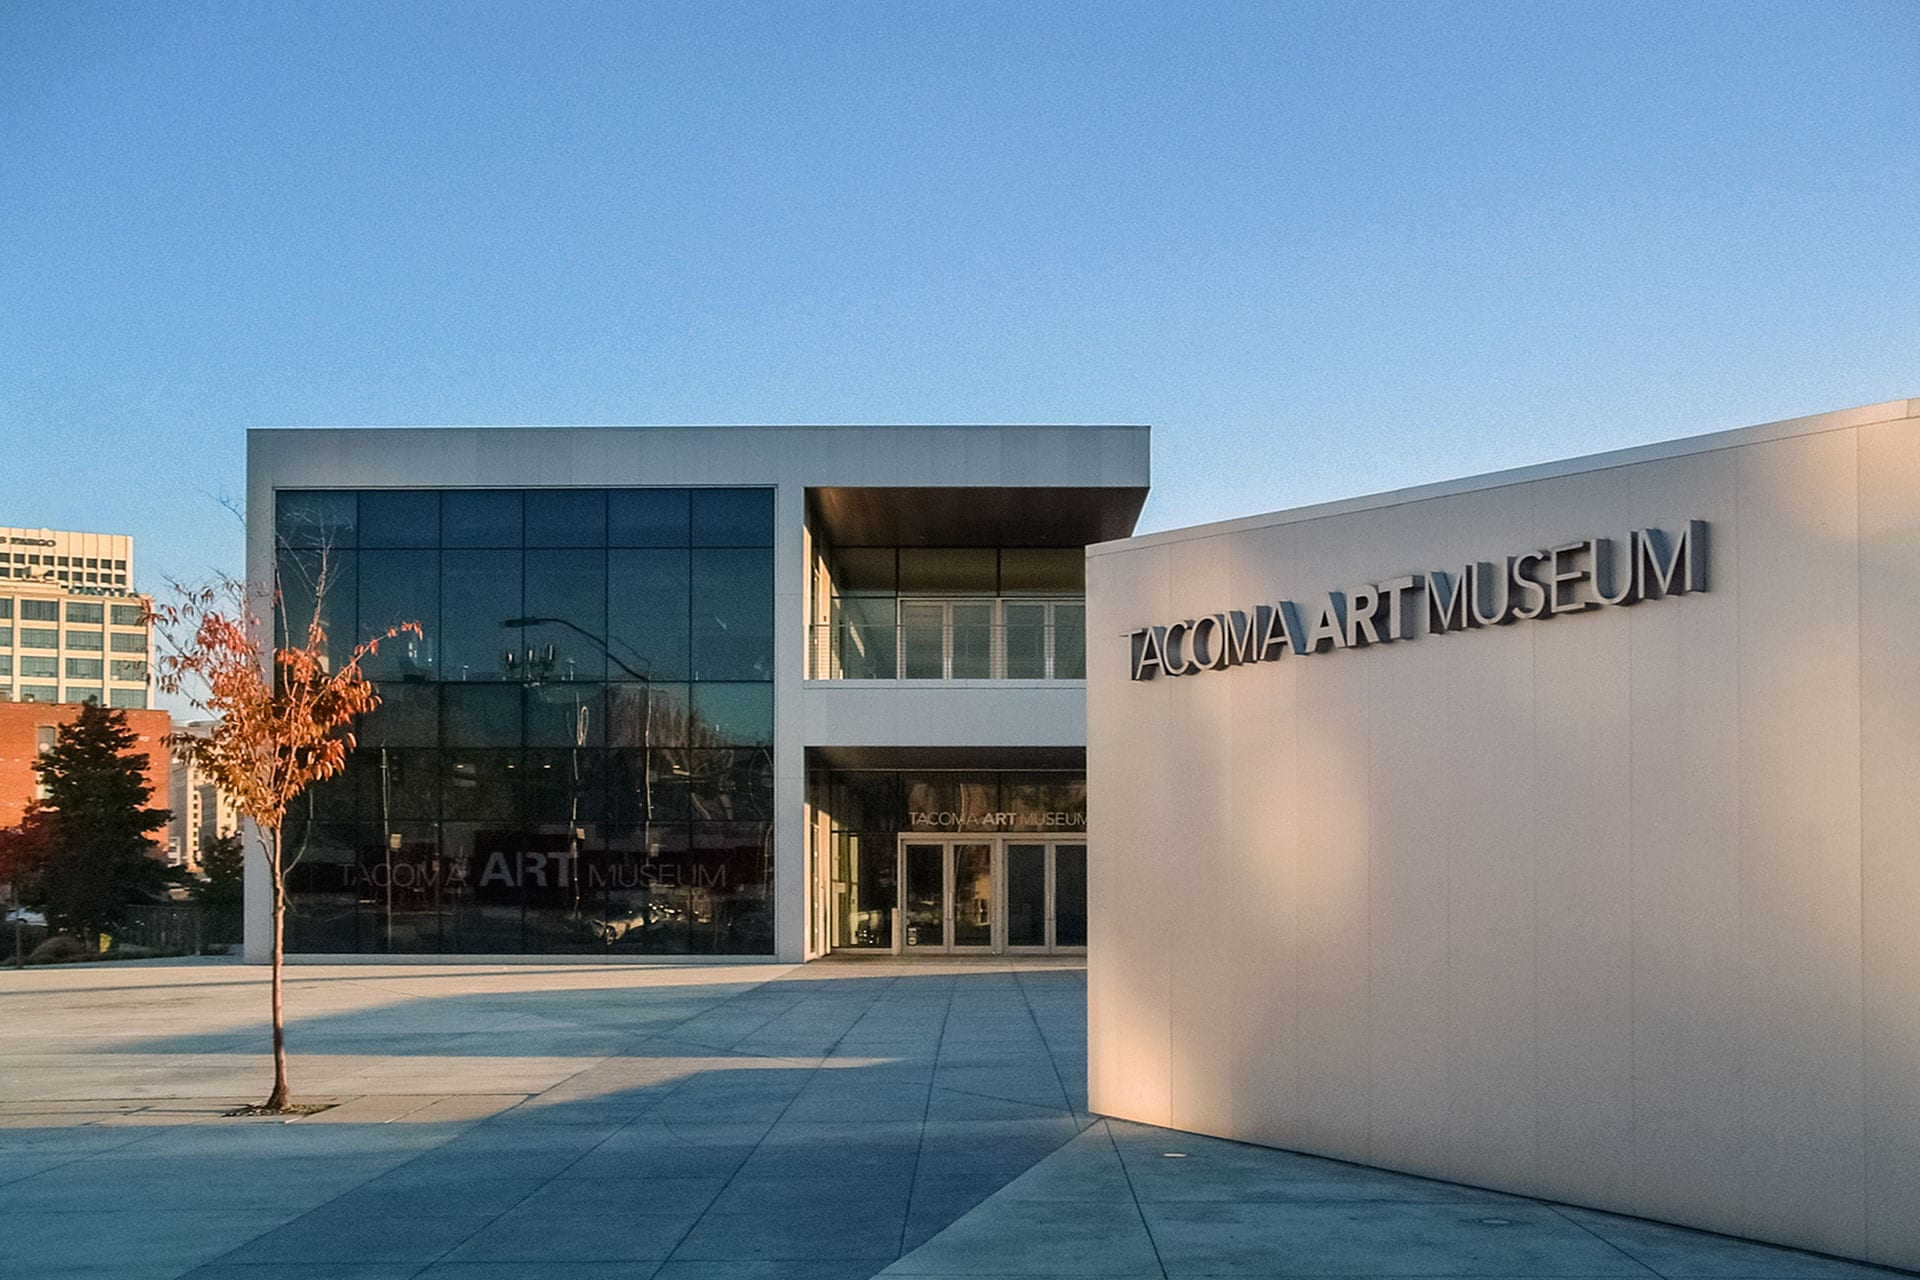 Entry for the Tacoma Art Museum in downtown Tacoma, Washington.